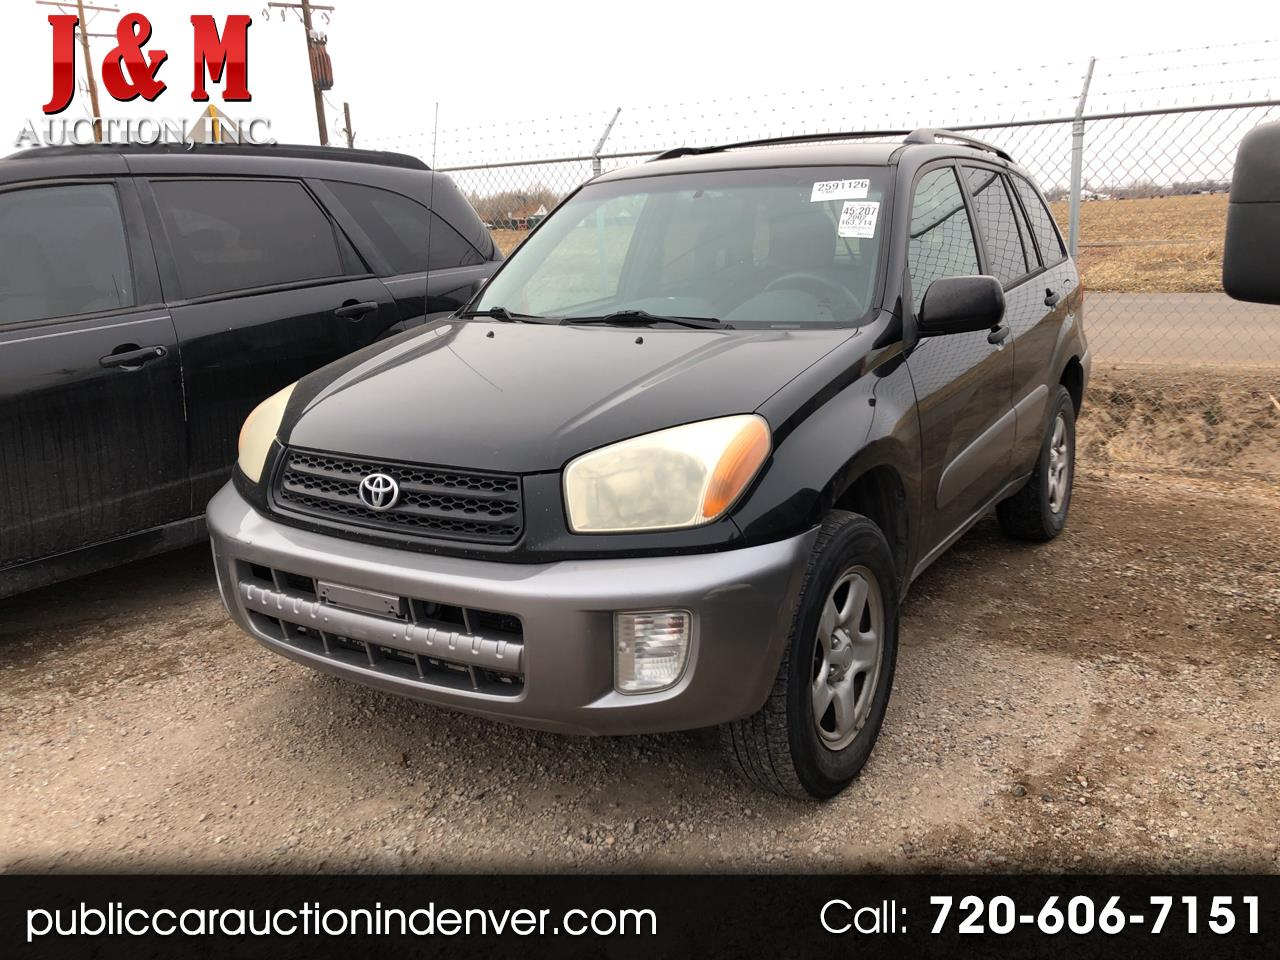 2002 Toyota RAV4 4dr Manual (Natl)